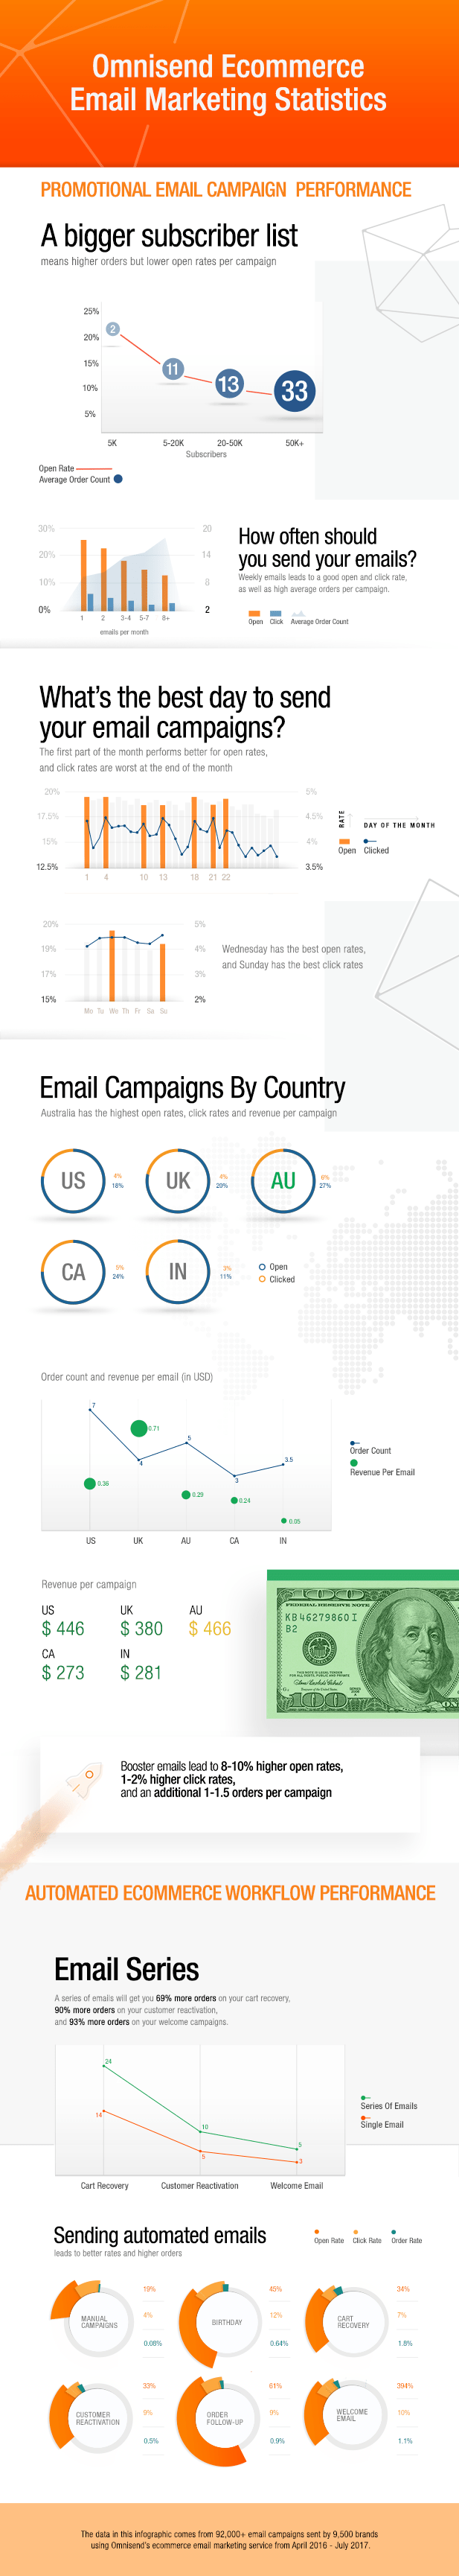 Omnisend is proud to presents its Ecommerce Email Marketing Statistics for 2017